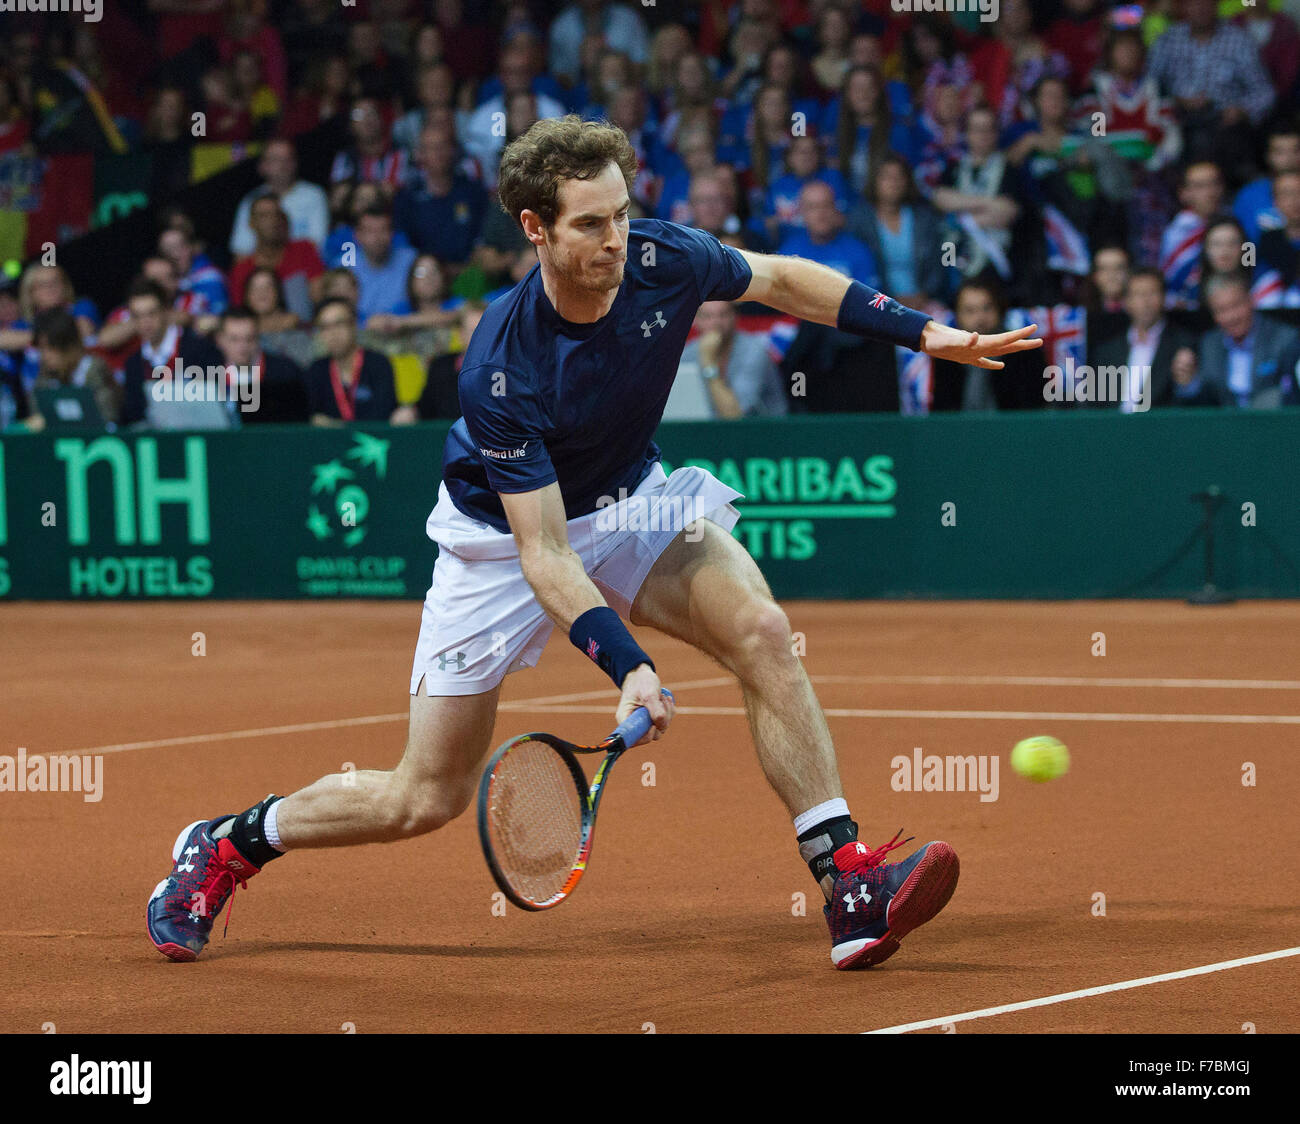 Gent, Belgium, November 28, 2015, Davis Cup Final, Belgium-Great Britain, day two, doubles match, Andy Murray (GBR) - Stock Image